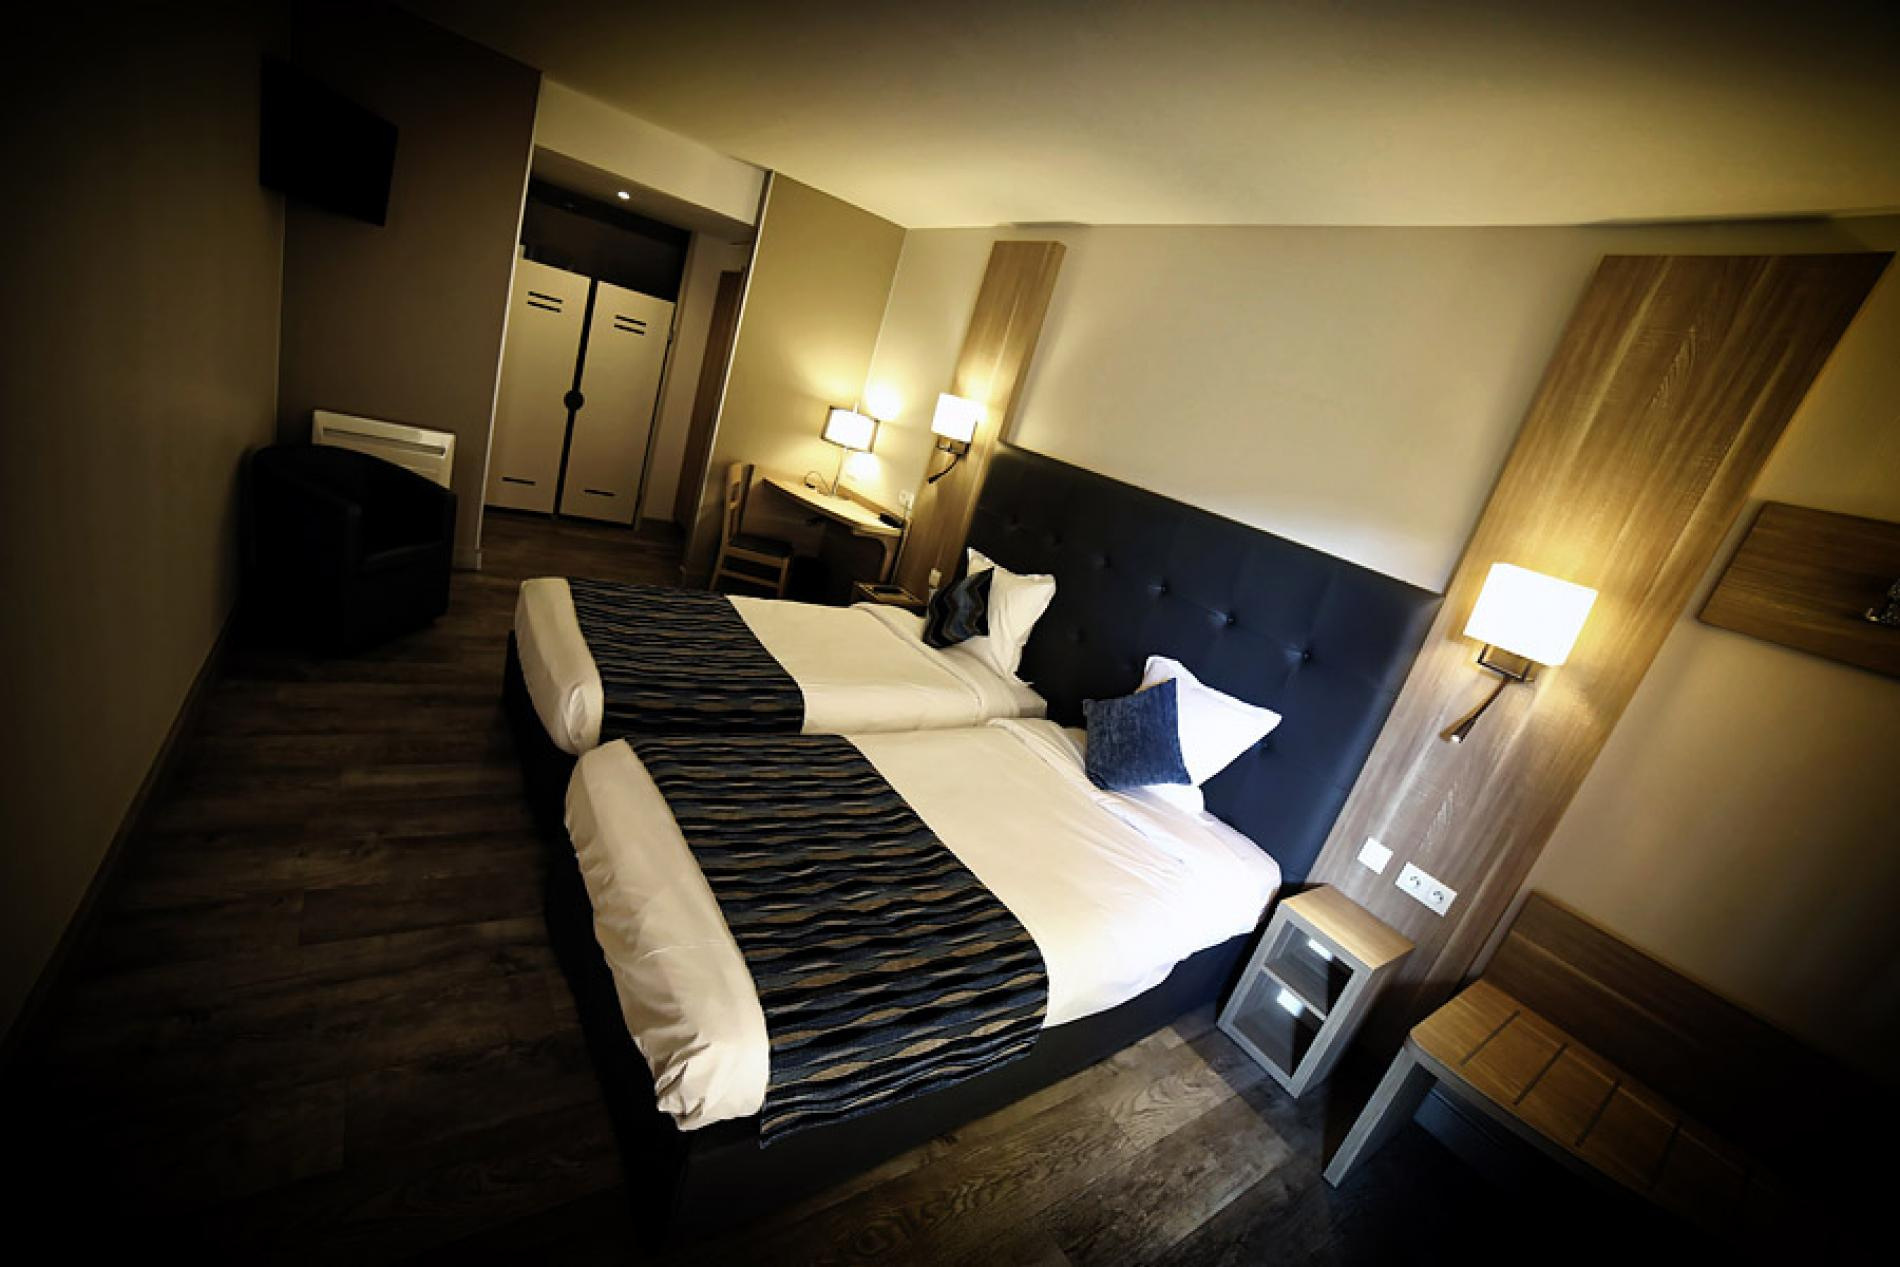 chambres hotel proche chalons en champagne matougues. Black Bedroom Furniture Sets. Home Design Ideas